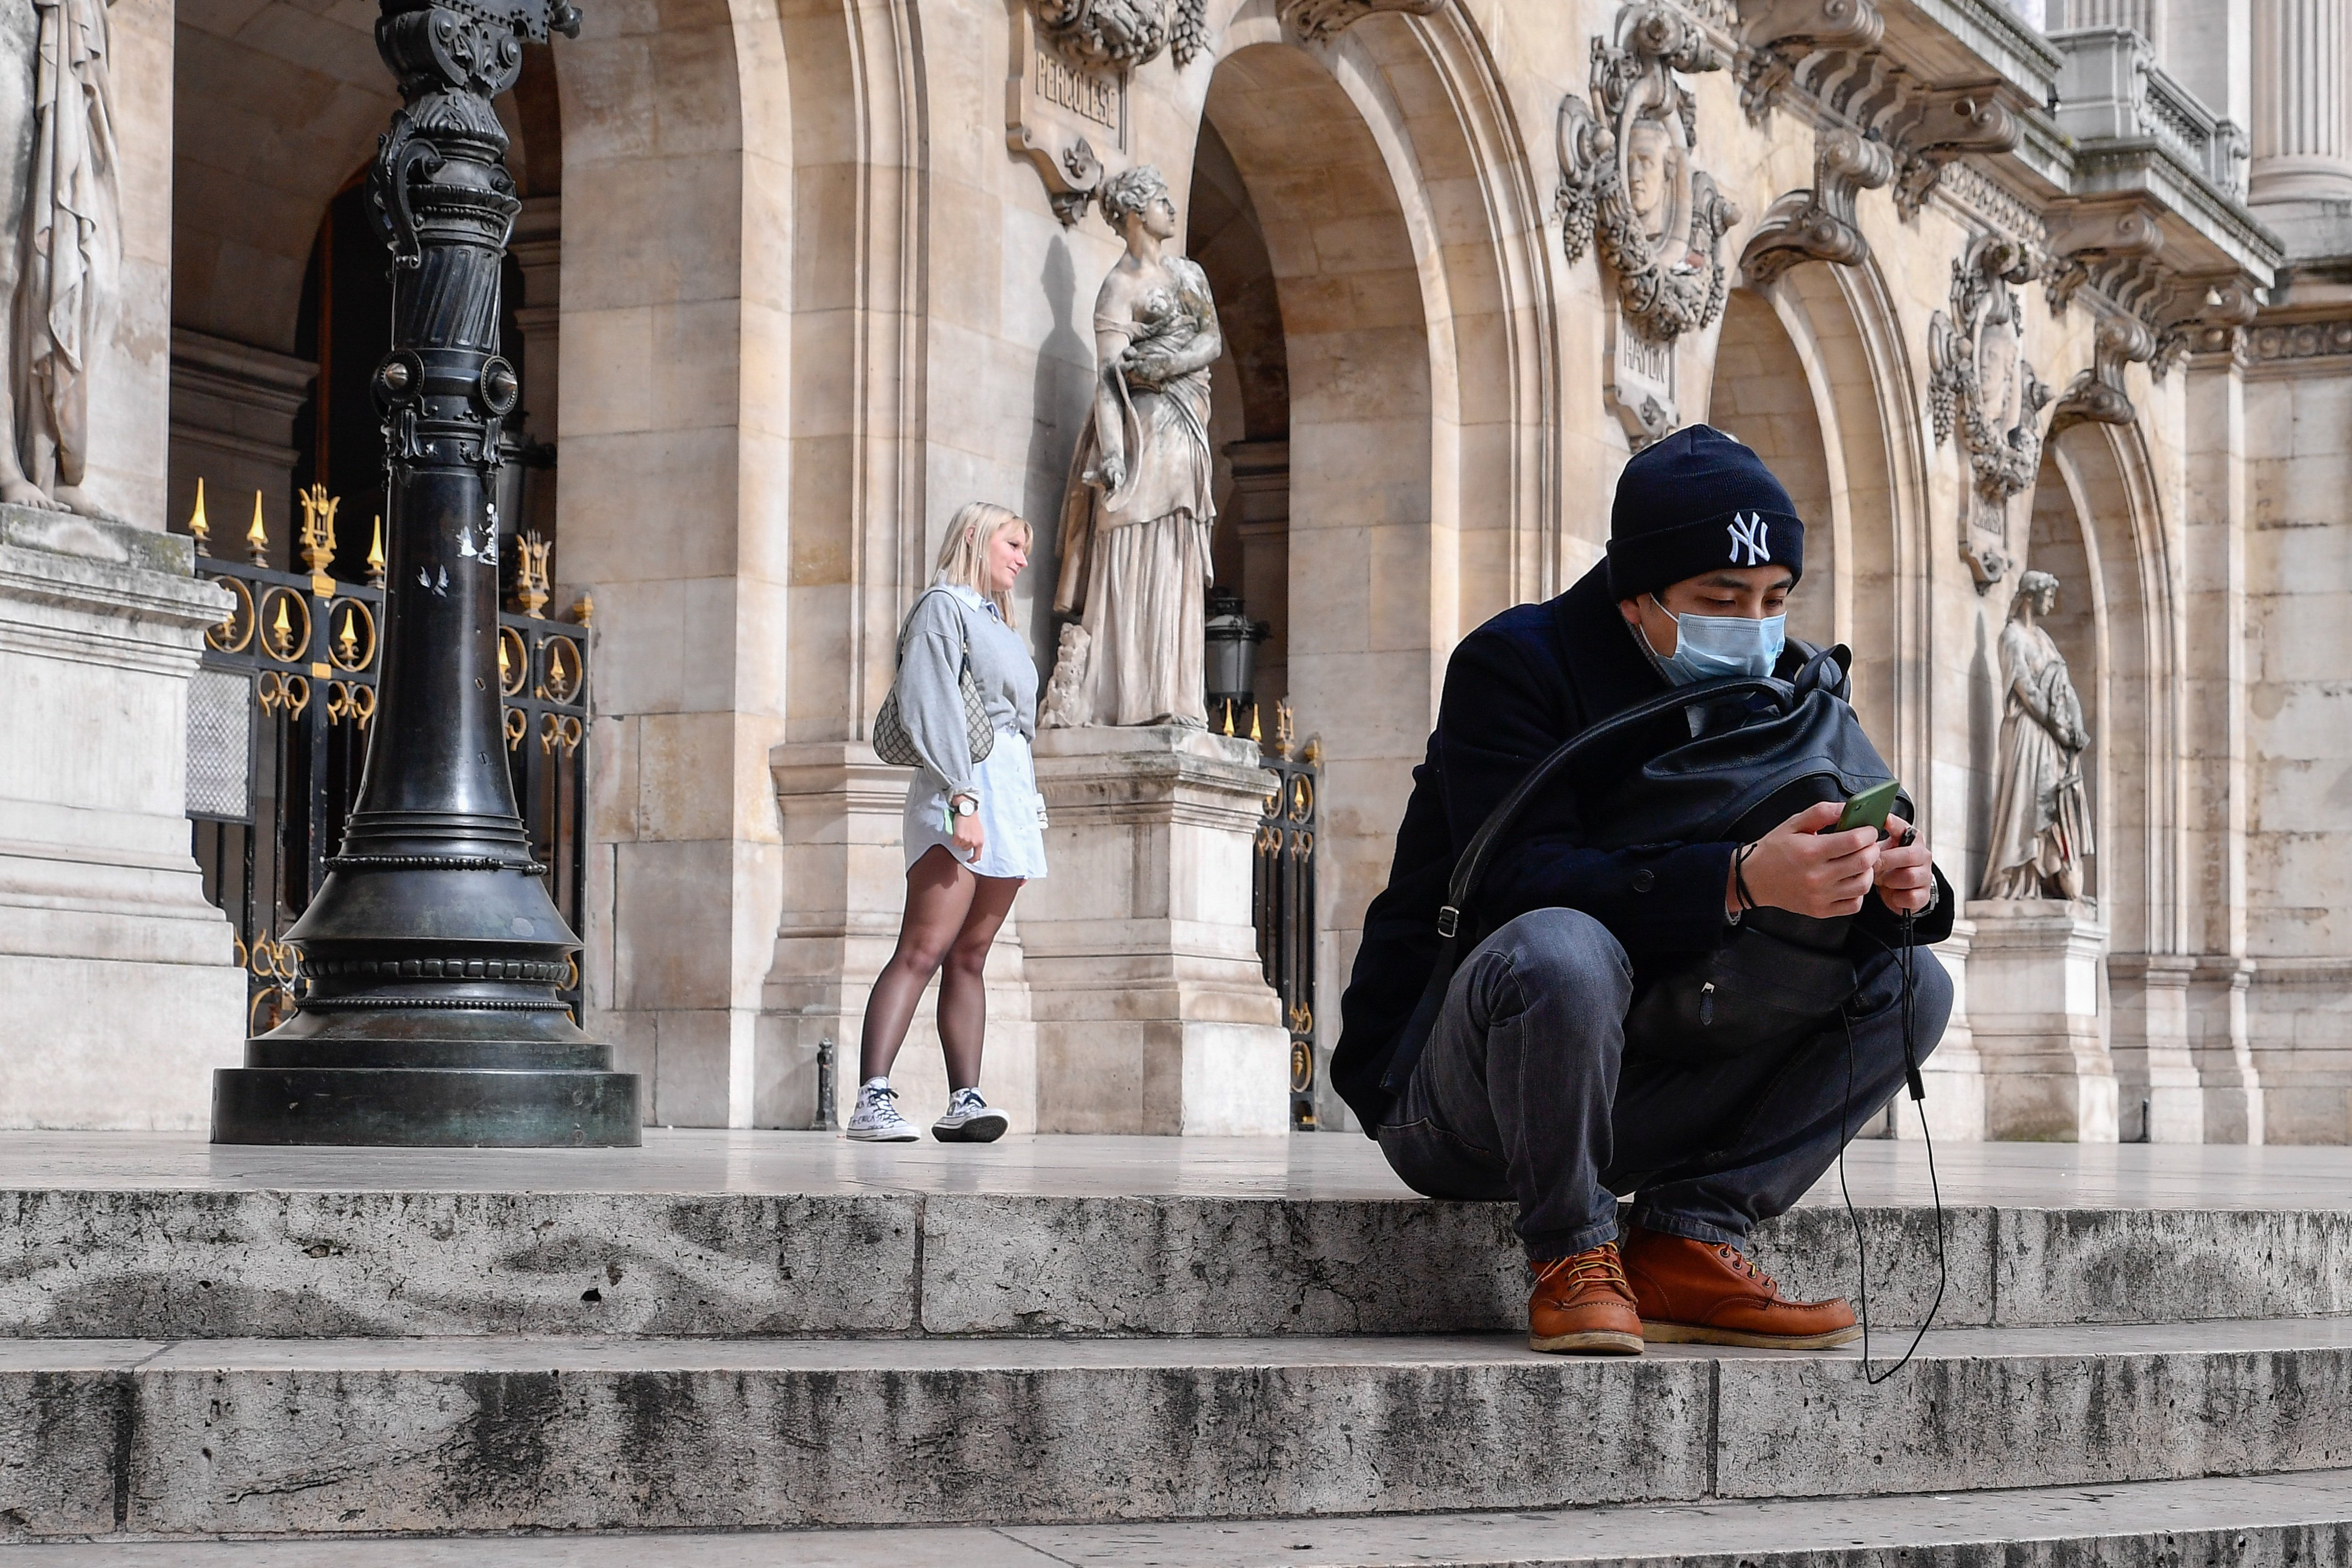 A man is seen wearing a mask in Paris on 3 March.